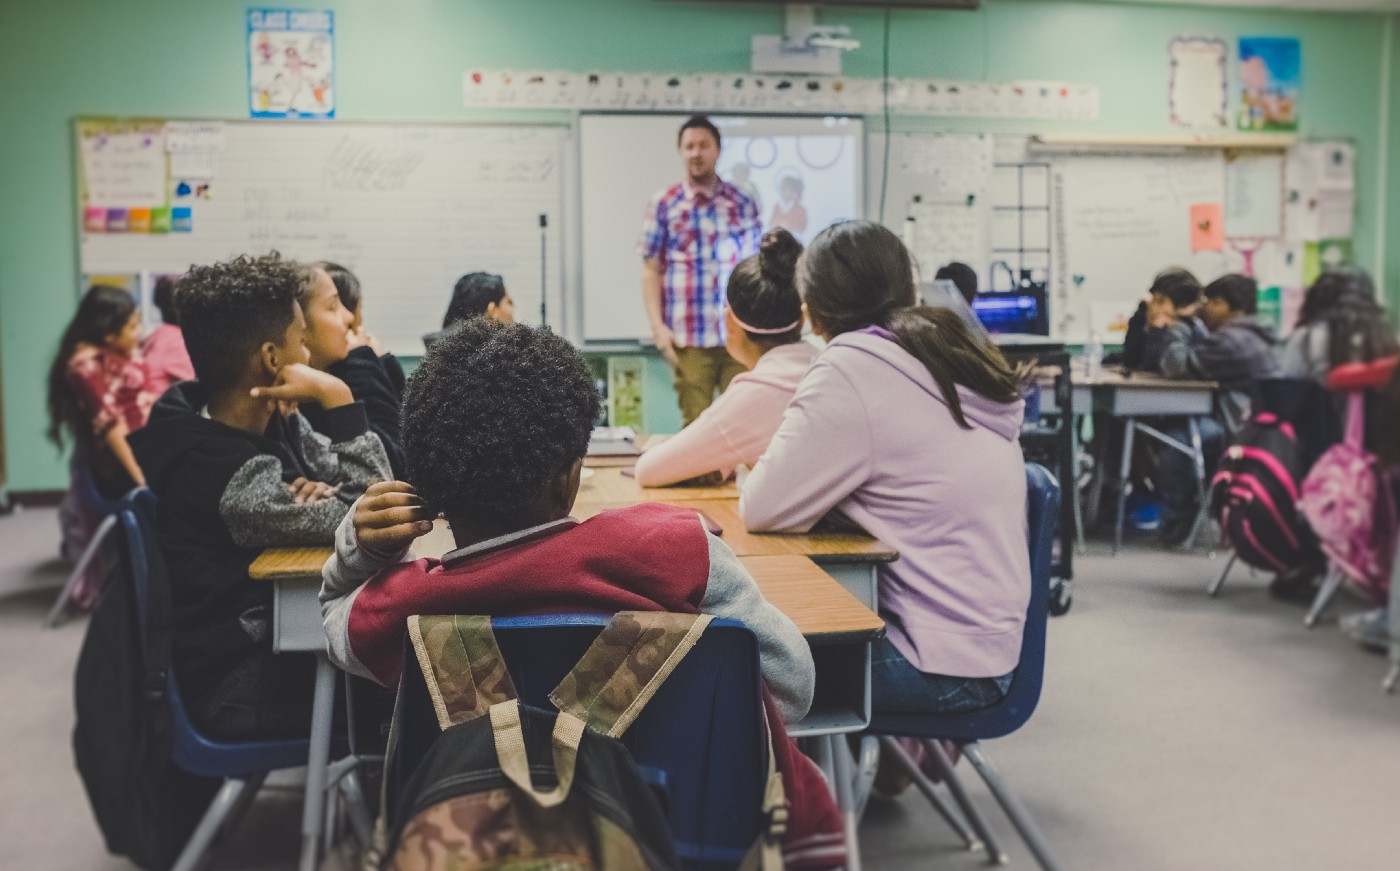 A teaching is standing in front of a class of attentive young students.